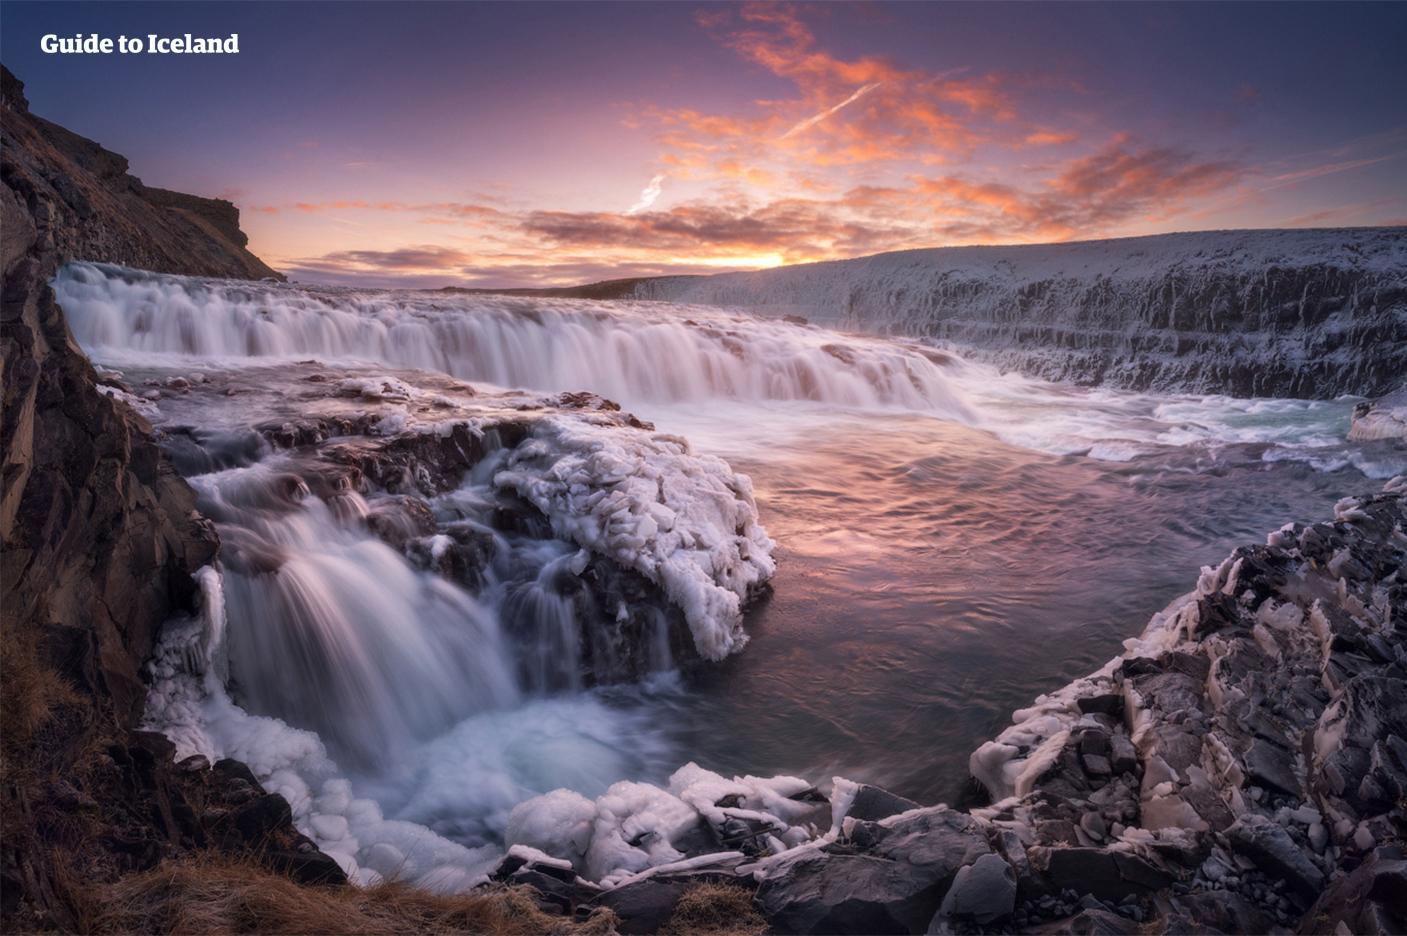 Gullfoss waterfall on the famous Golden Circle Route of Iceland.